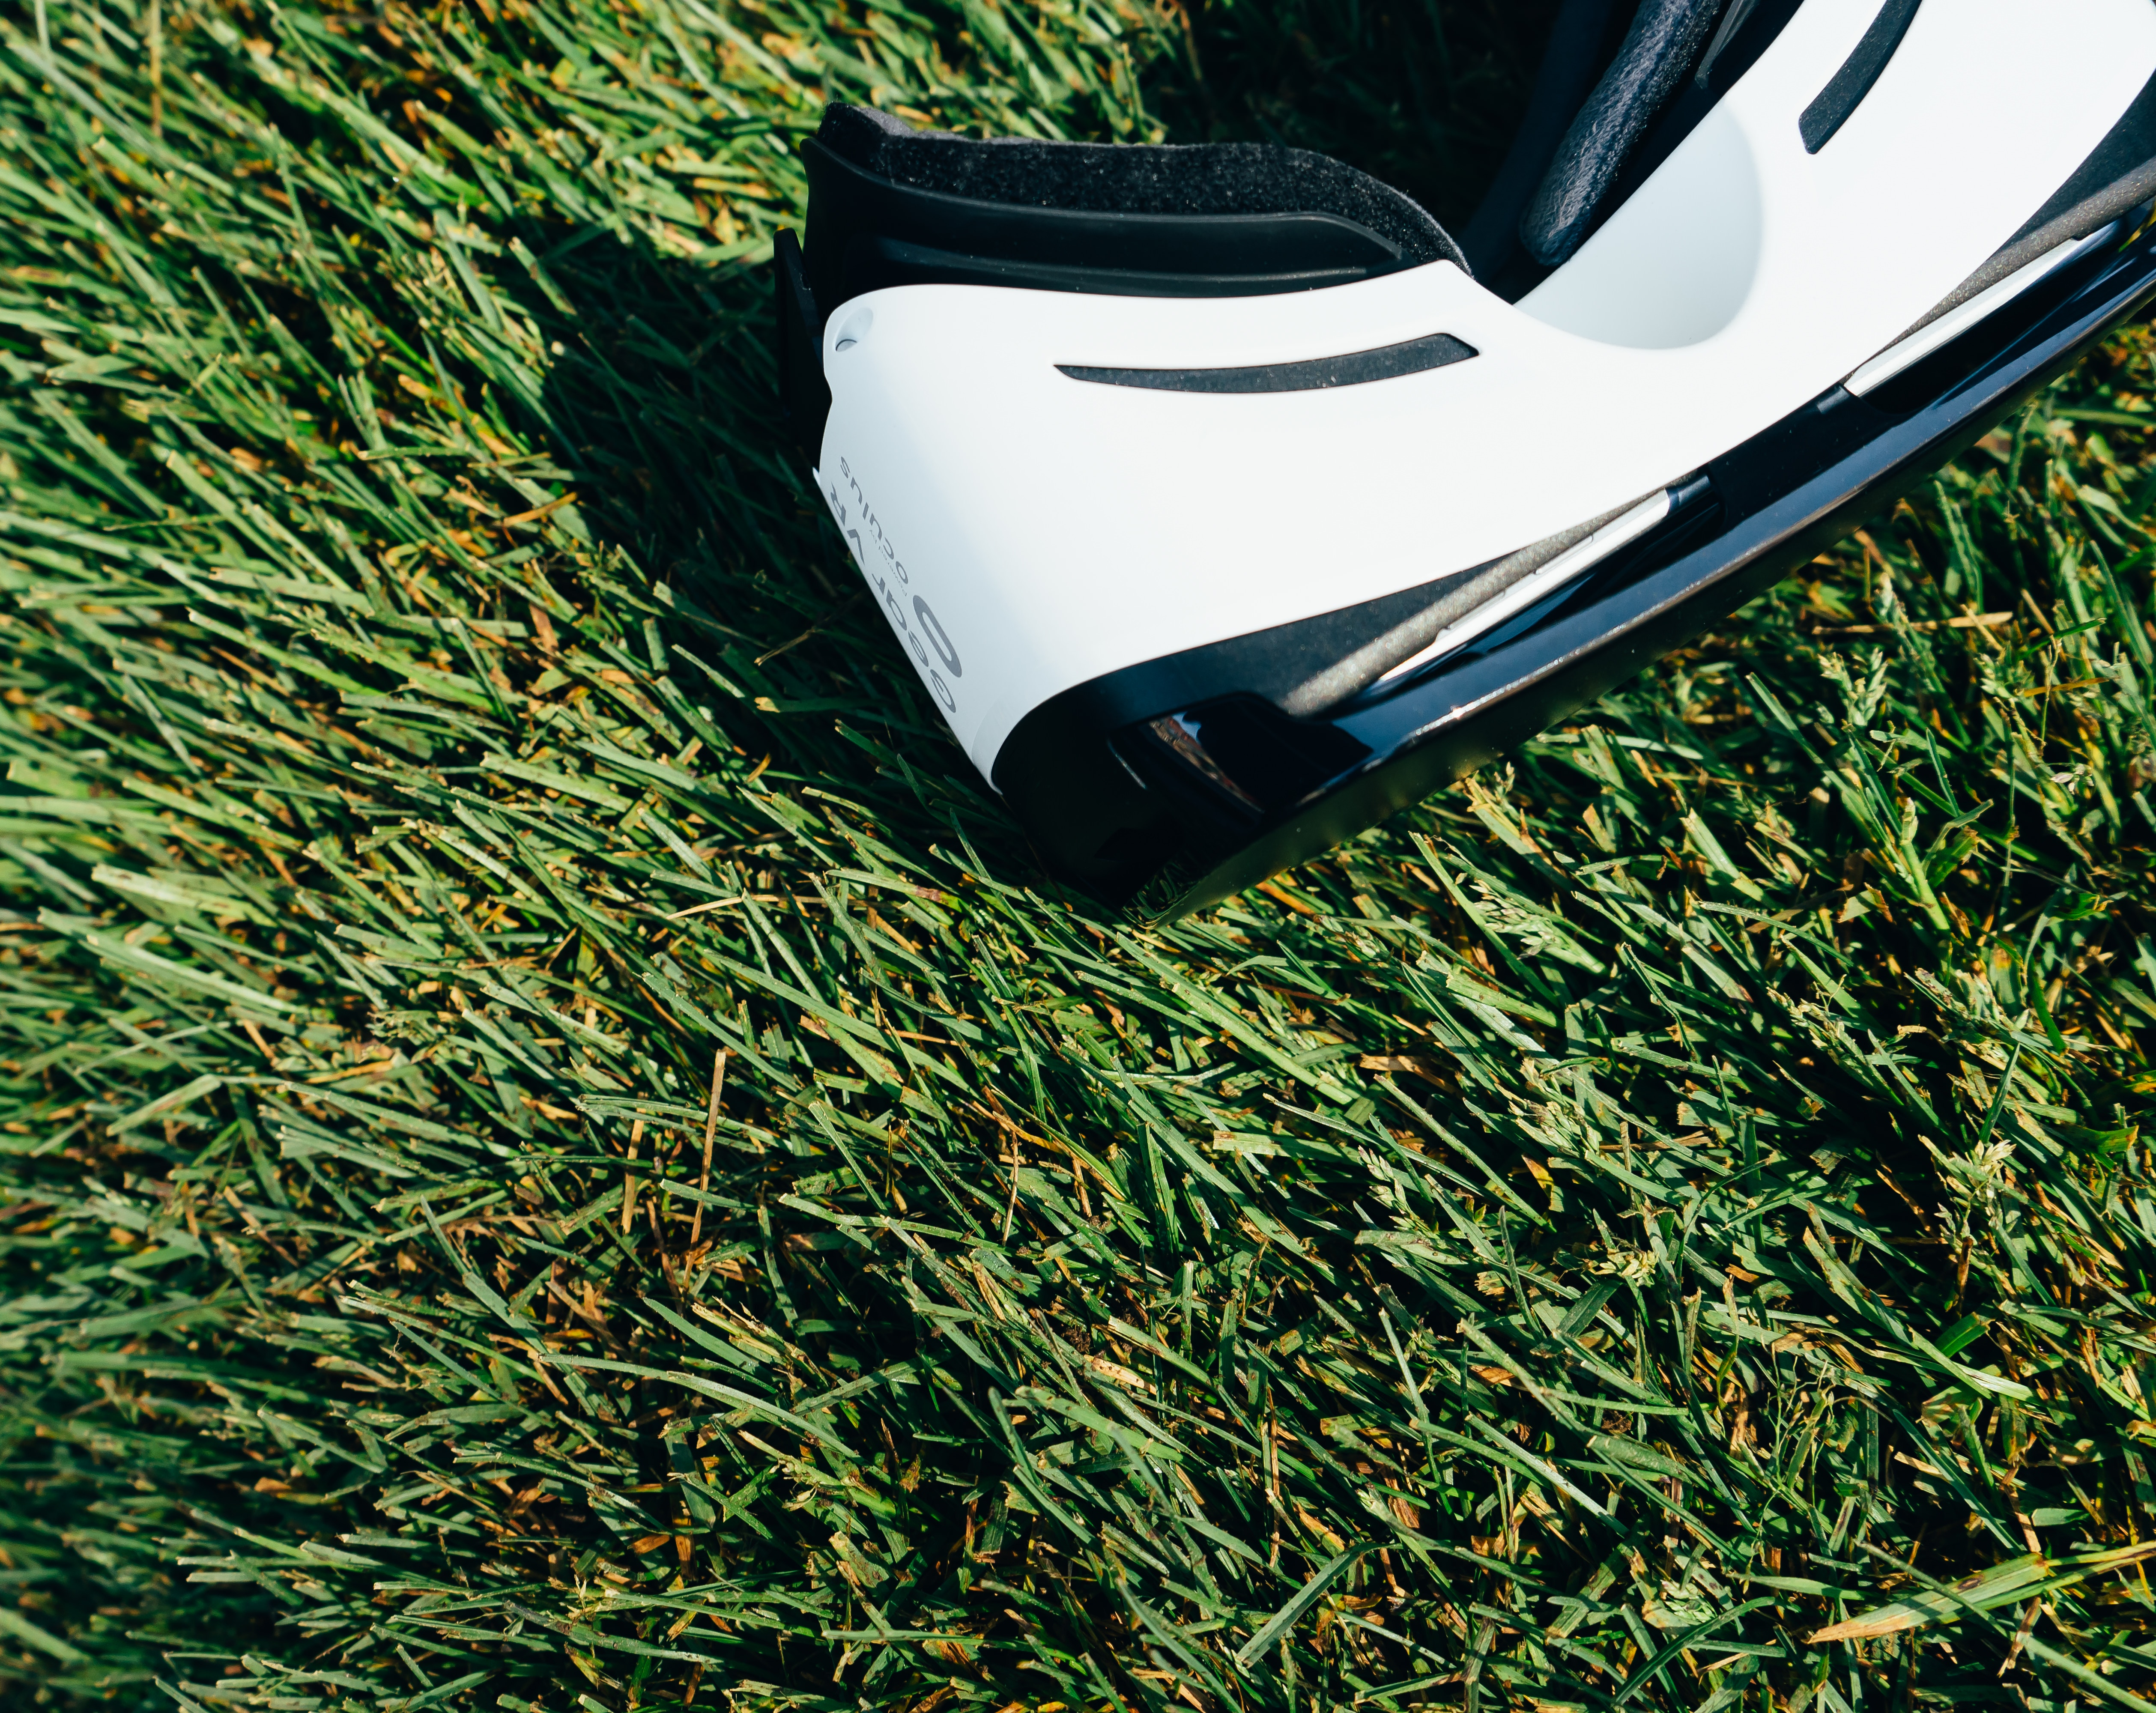 Free stock photo of grass, lawn, technology, outdoors